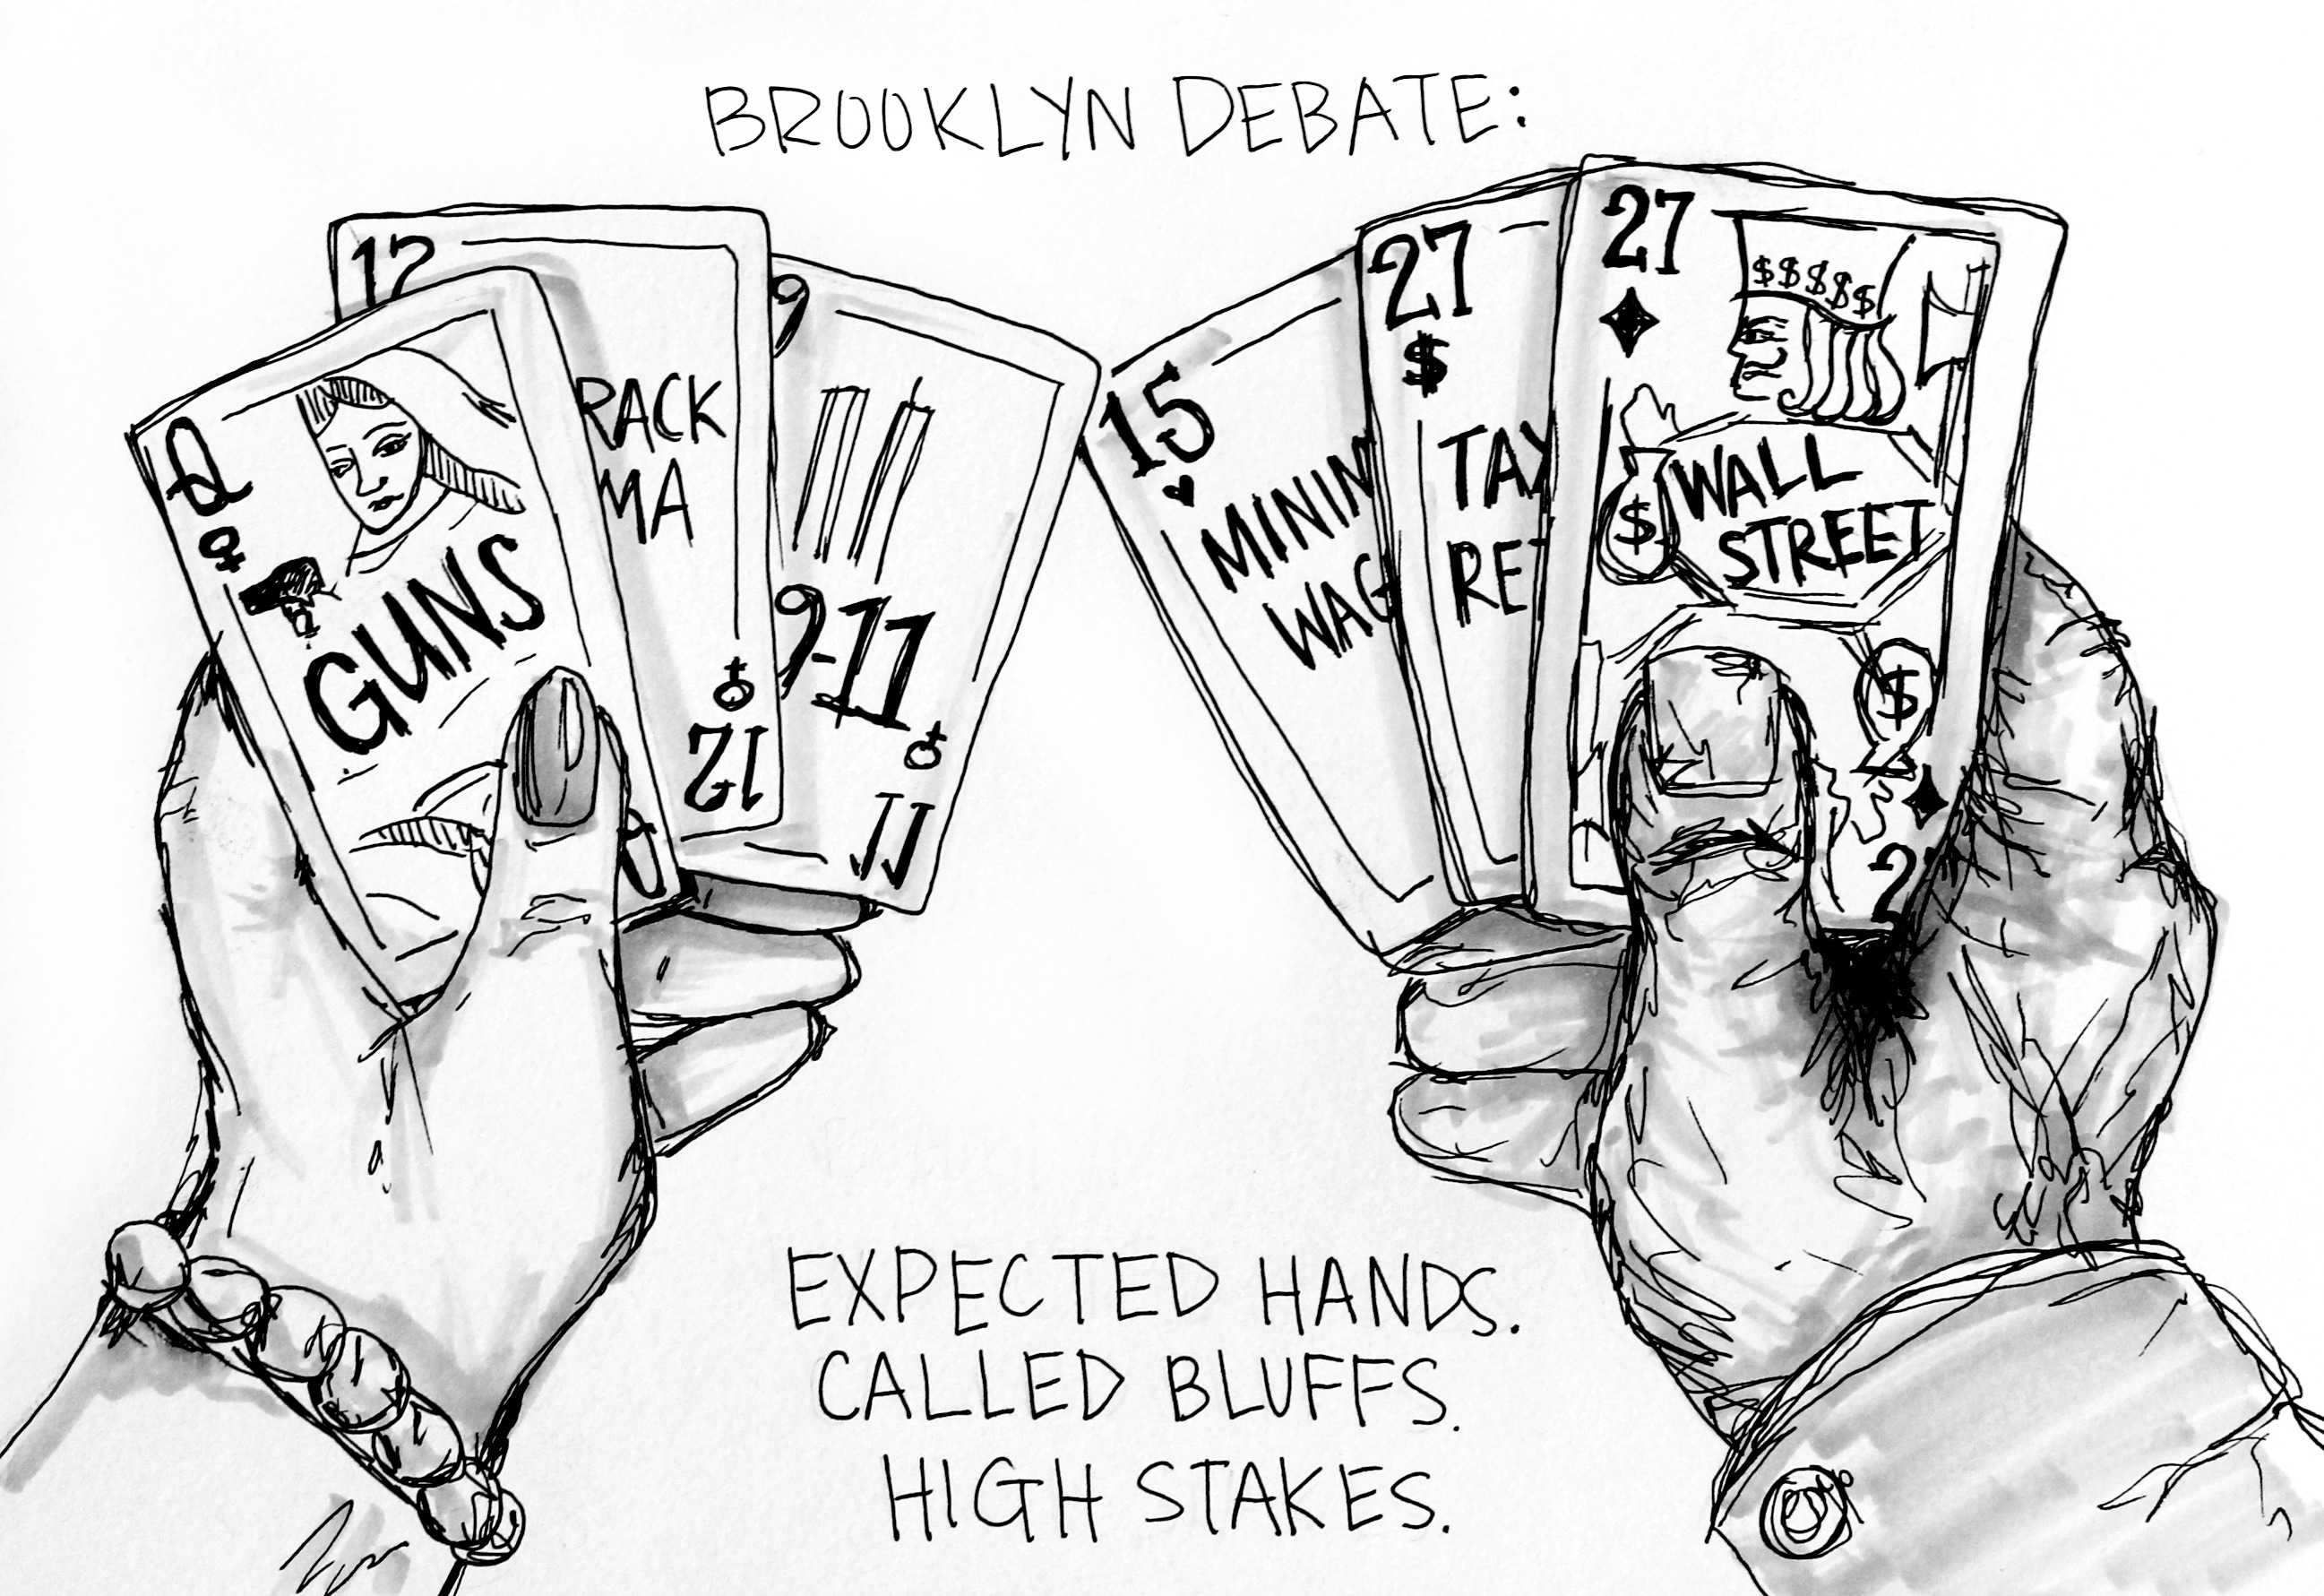 Cartoon: The Brooklyn Debate